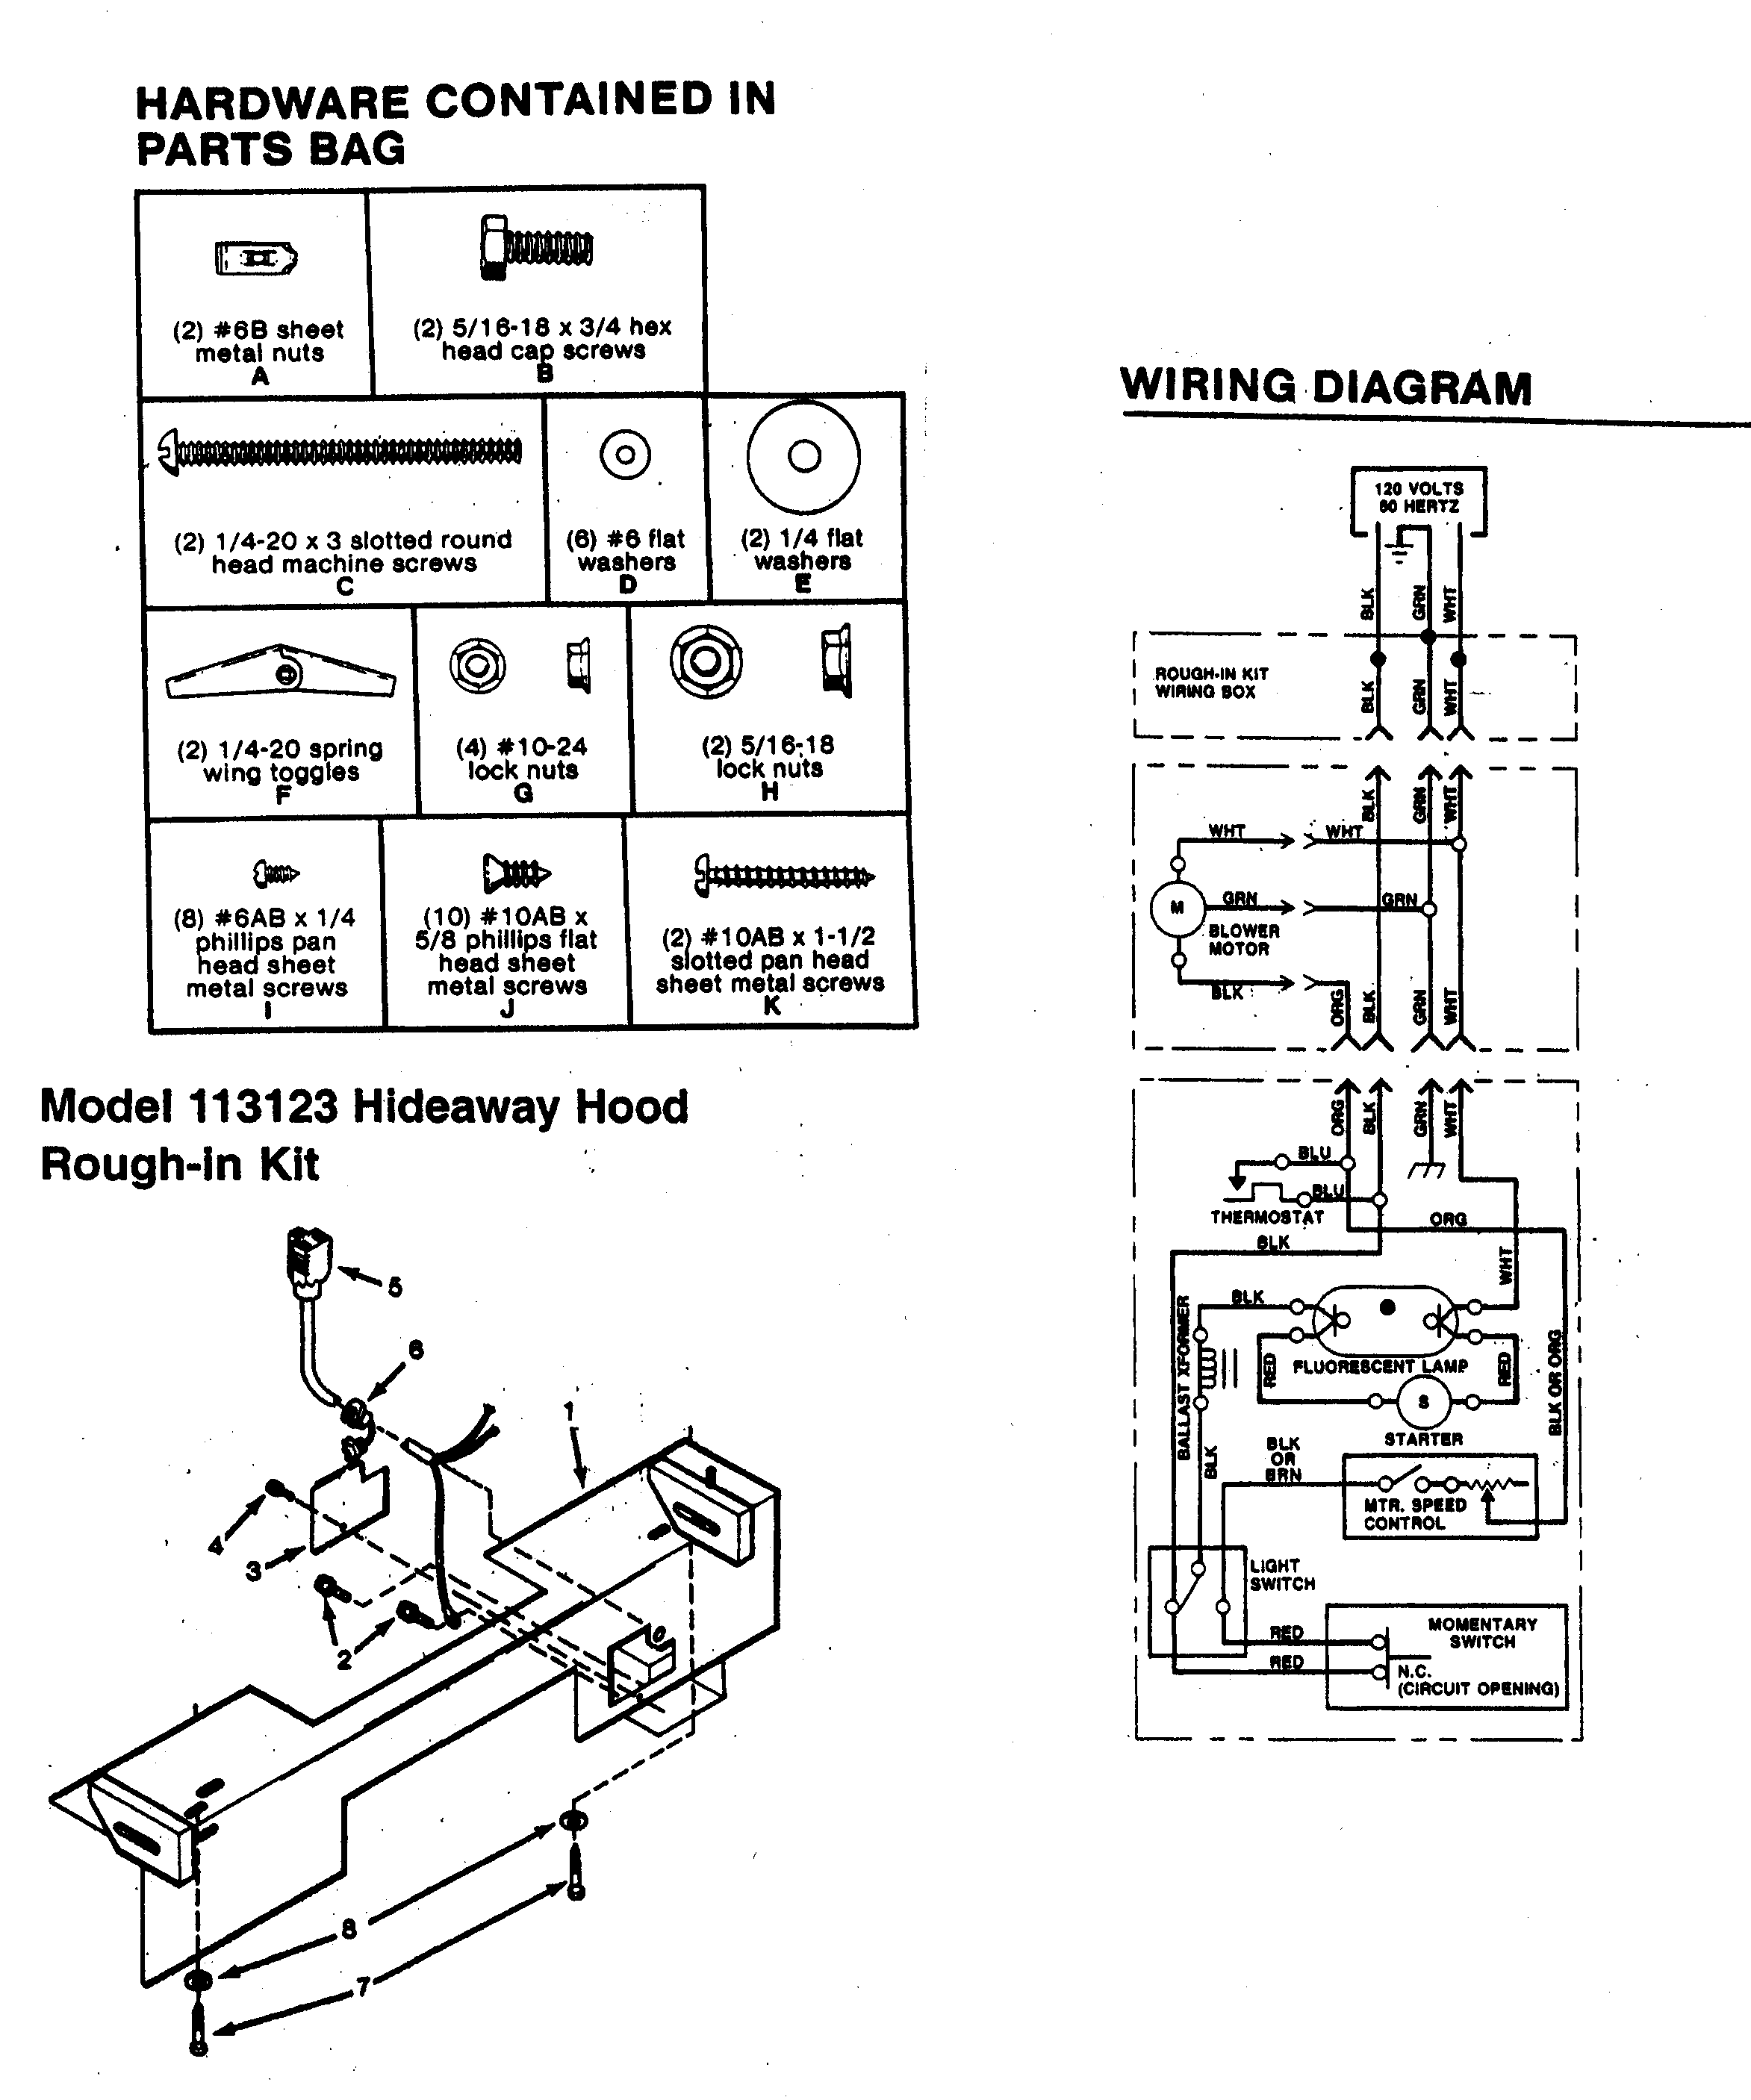 hight resolution of unique wiring diagram for electric stove outlet diagram diagramsample diagramtemplate wiringdiagram